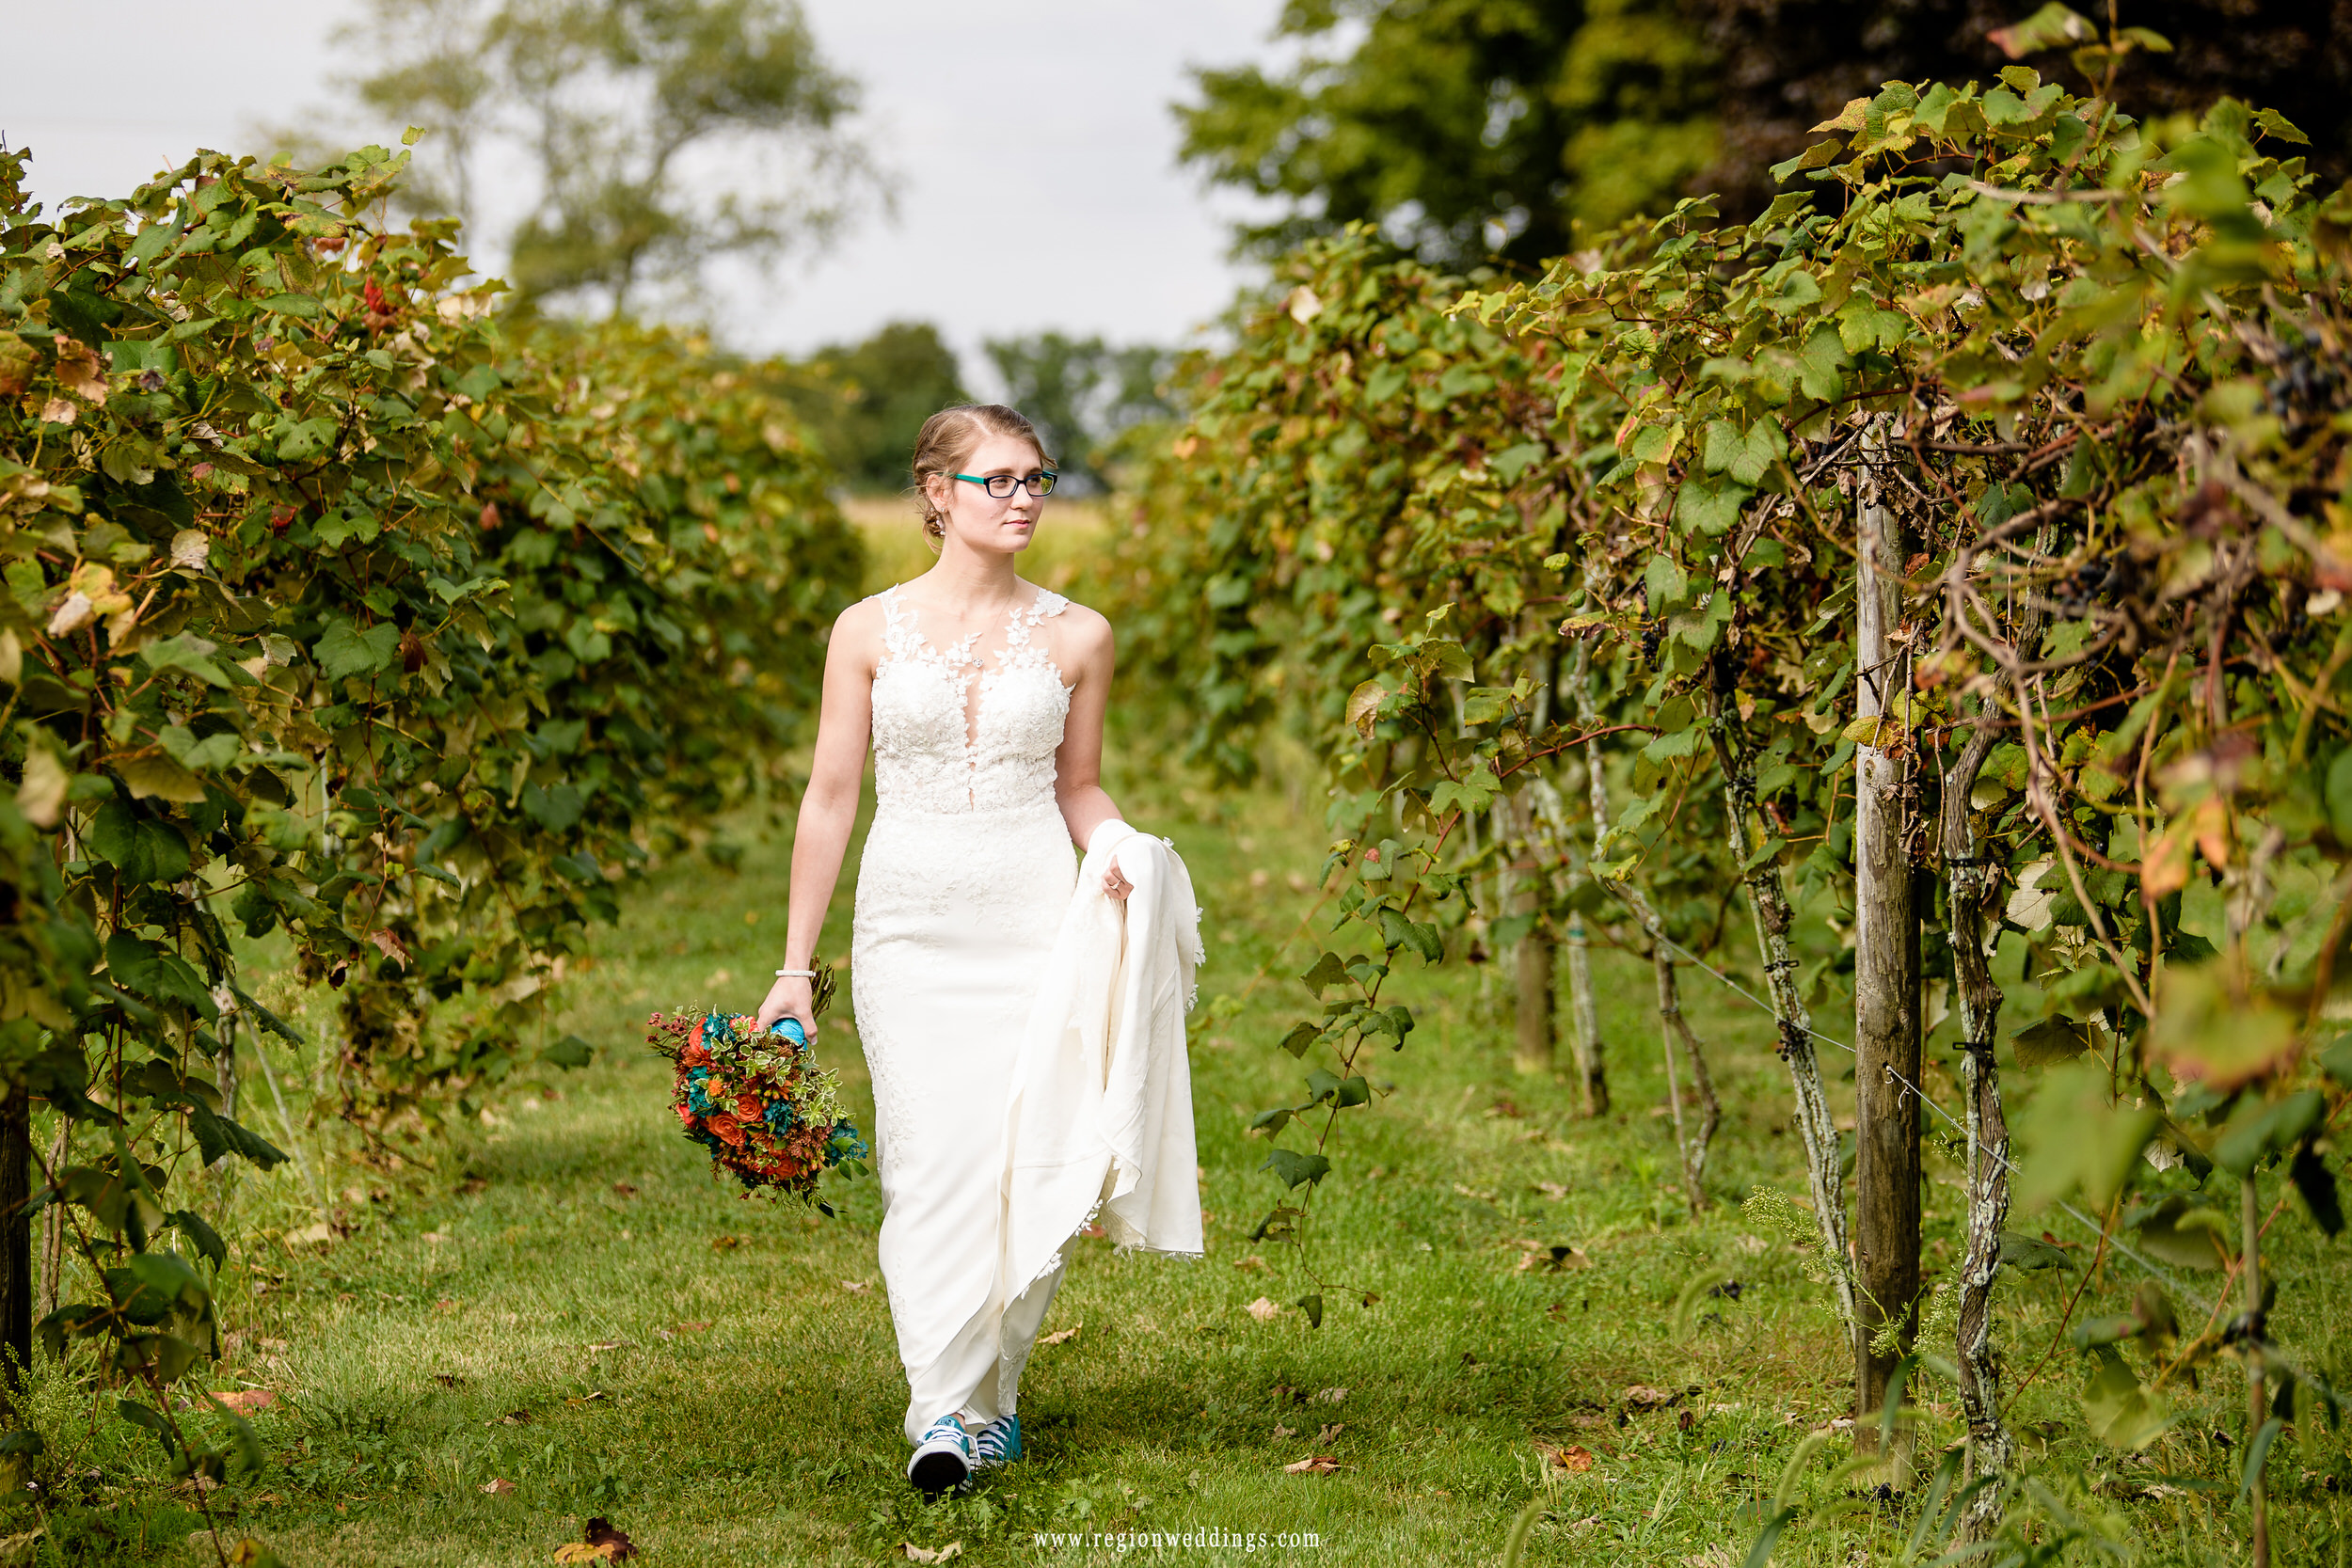 A boho styled bride walks along the grape orchards in her Converse All Star sneakers.